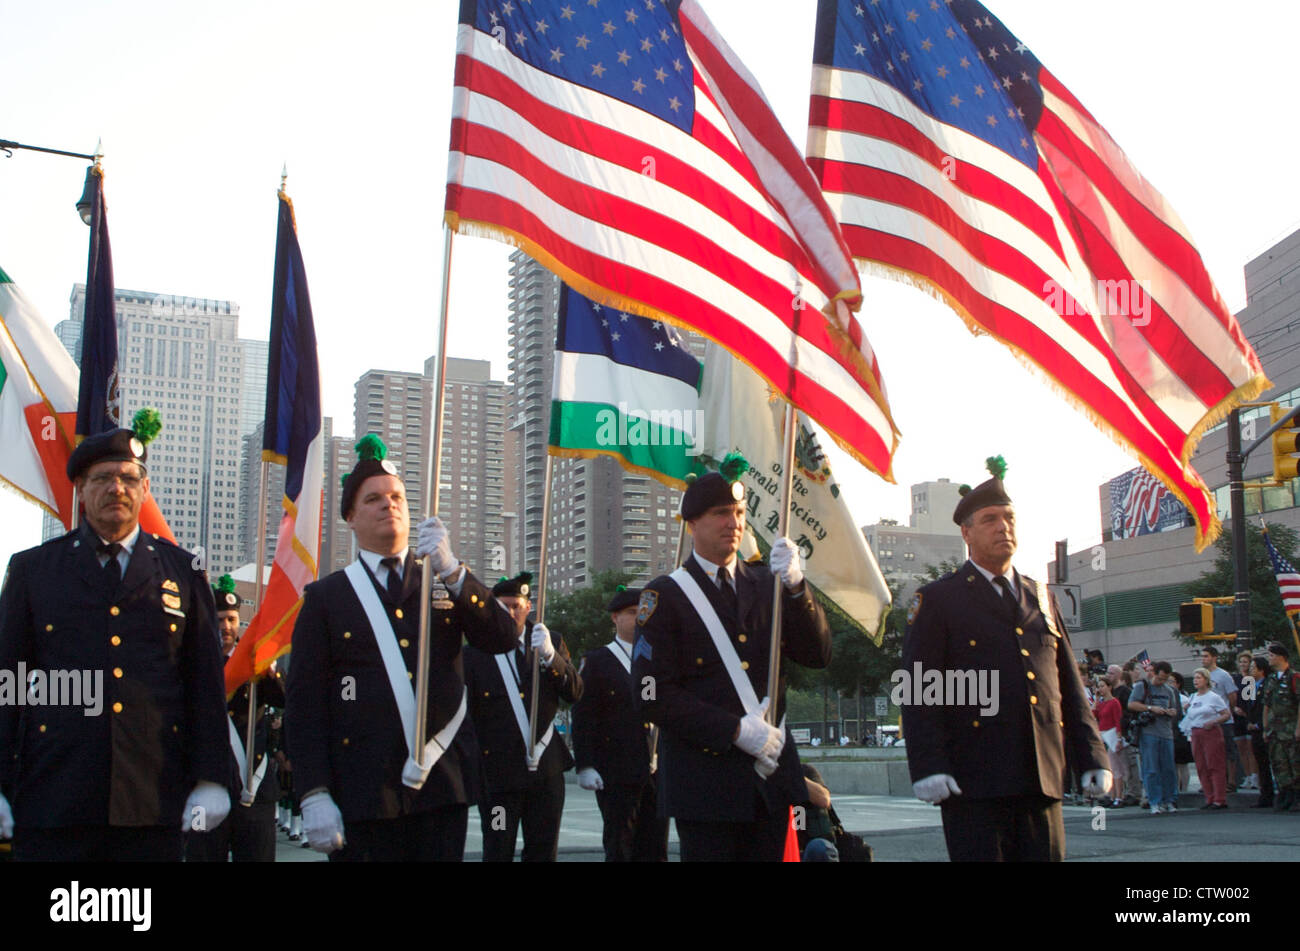 The NYPD Emerald Society color guard marches during the one year anniversary observance of the September 11th attacks - Stock Image